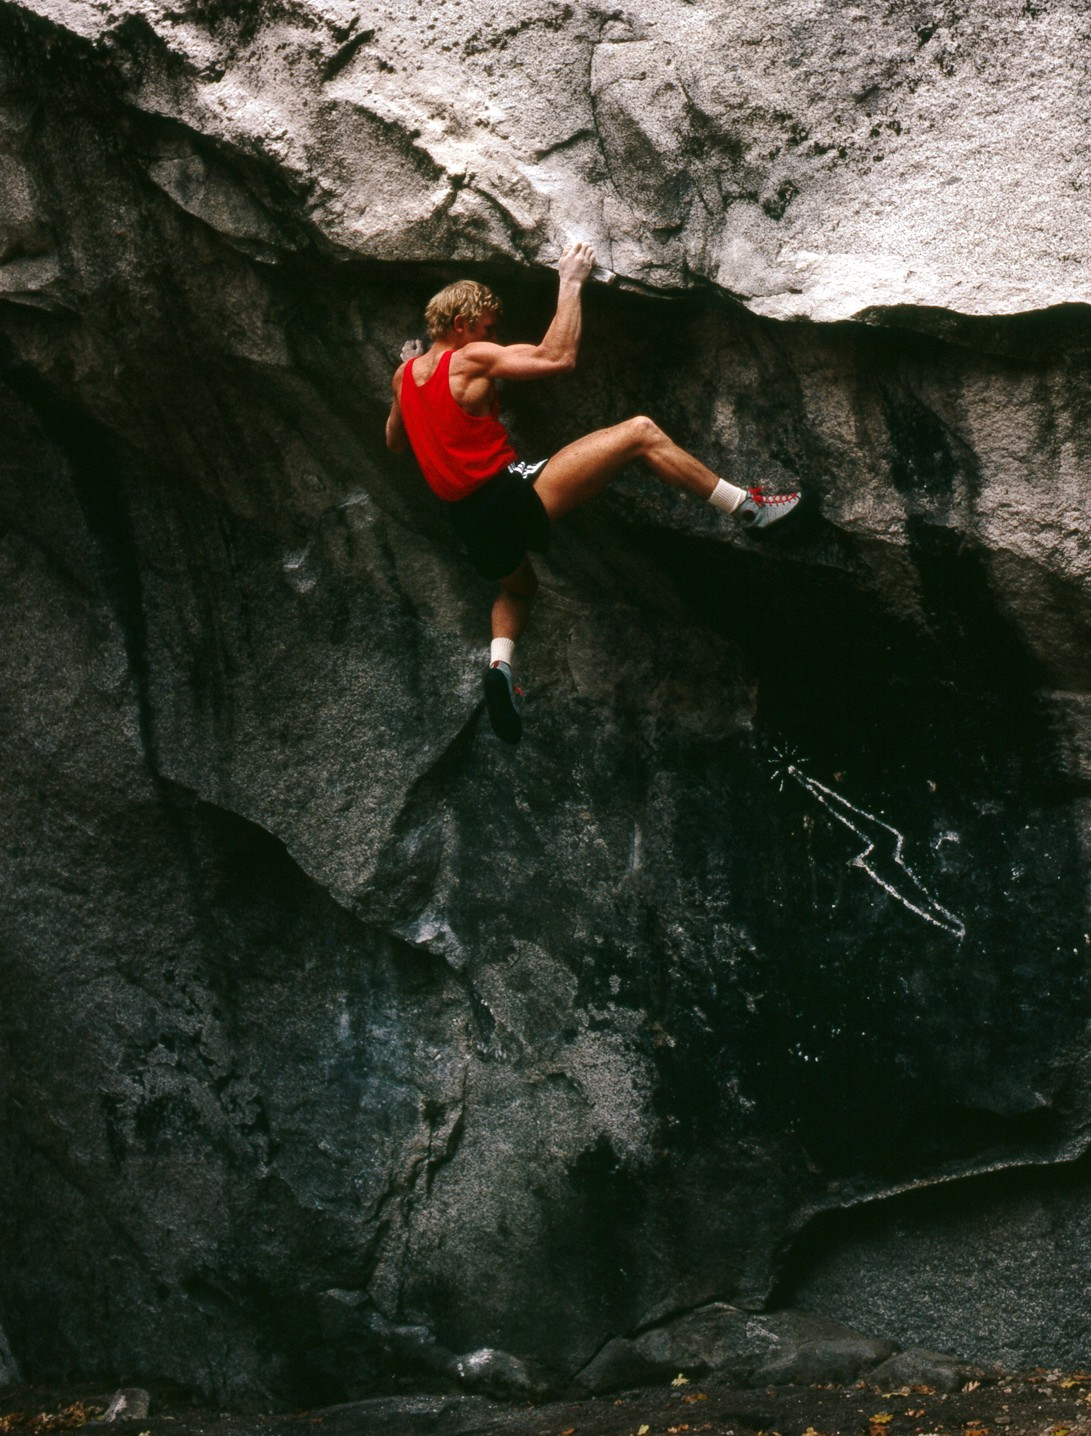 Photos: The stoned outlaw climbers who conquered Yosemite ...